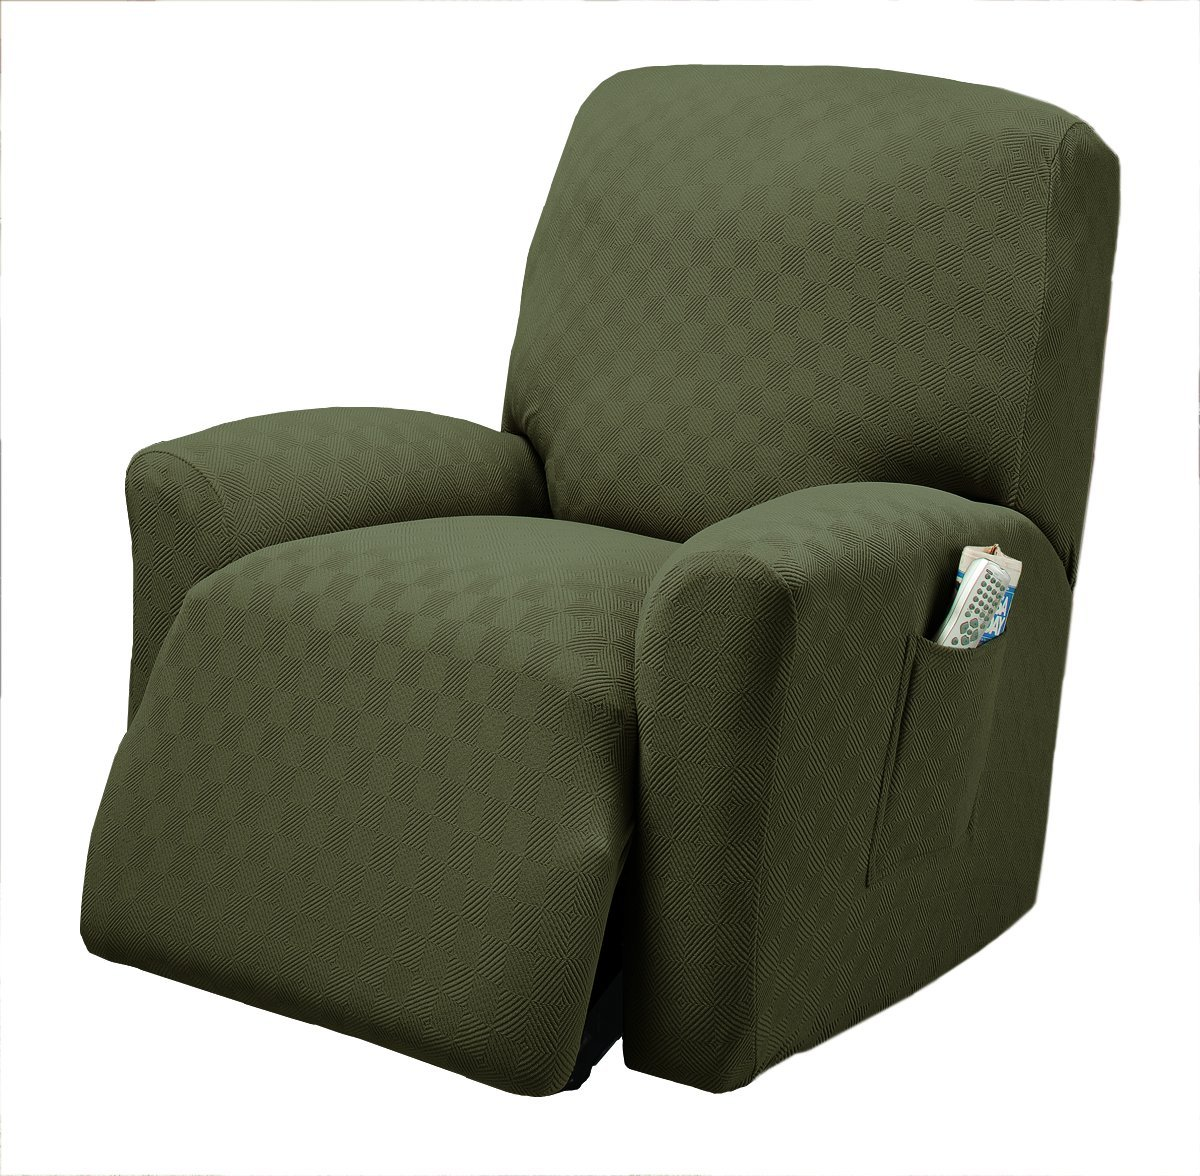 recliners ideas sofa covers slipcovers loveseat australia for design stretch homecoach cover reclining slipcover recliner unique